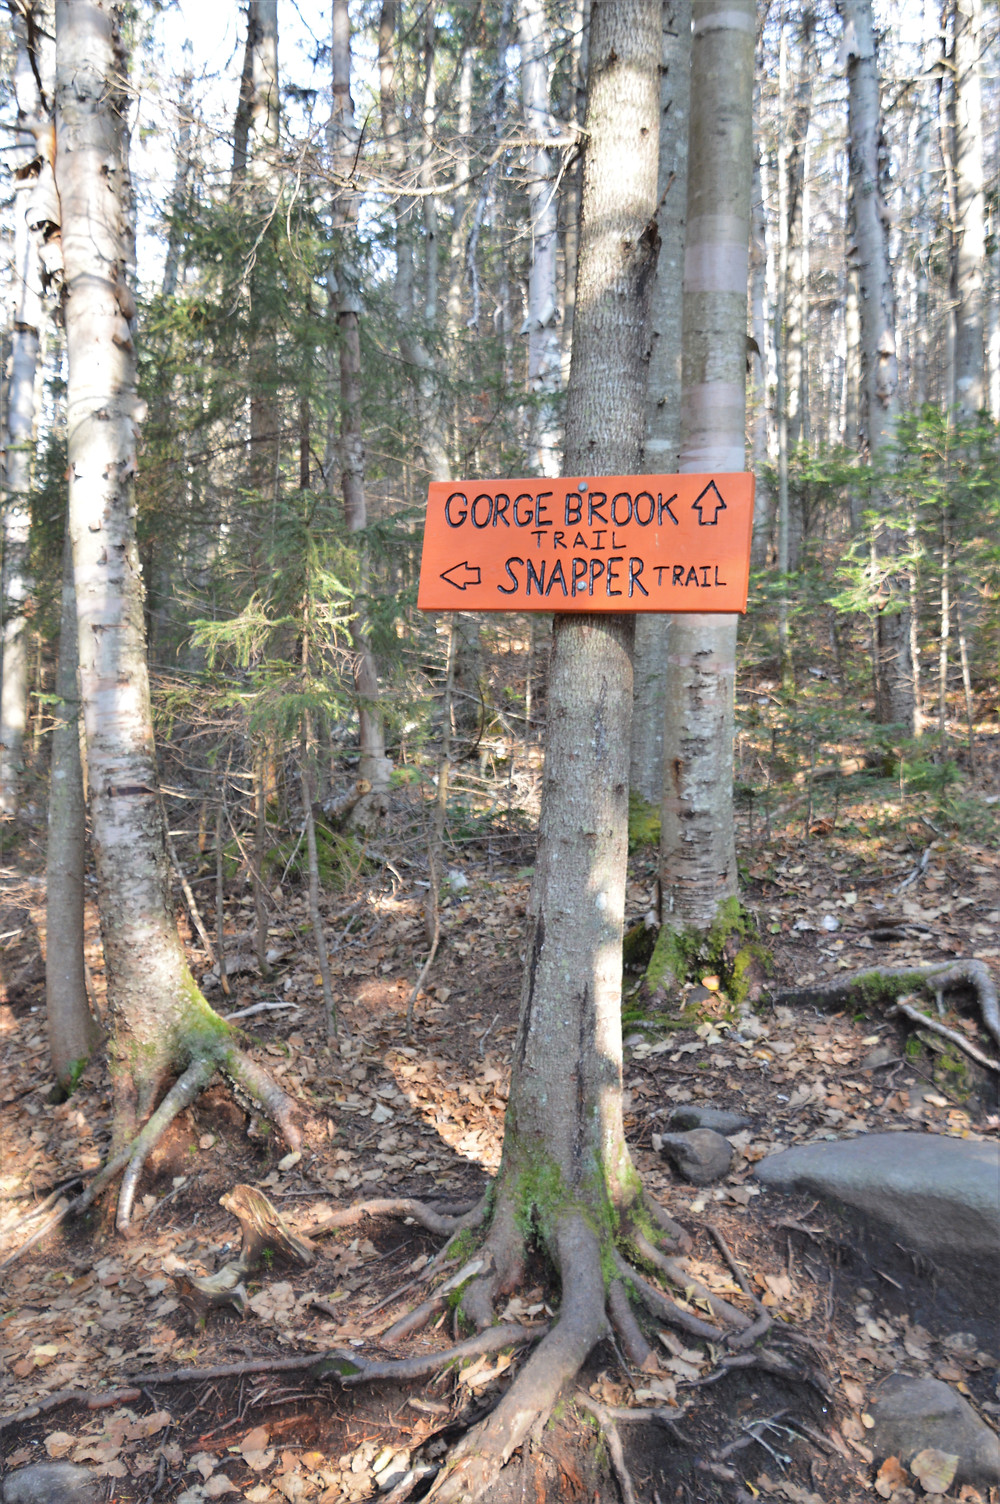 Trail marker for Gorge Brook Trail or Snapper Trail both lead to Mt Moosilauke summit in NH. NH 4000 footer